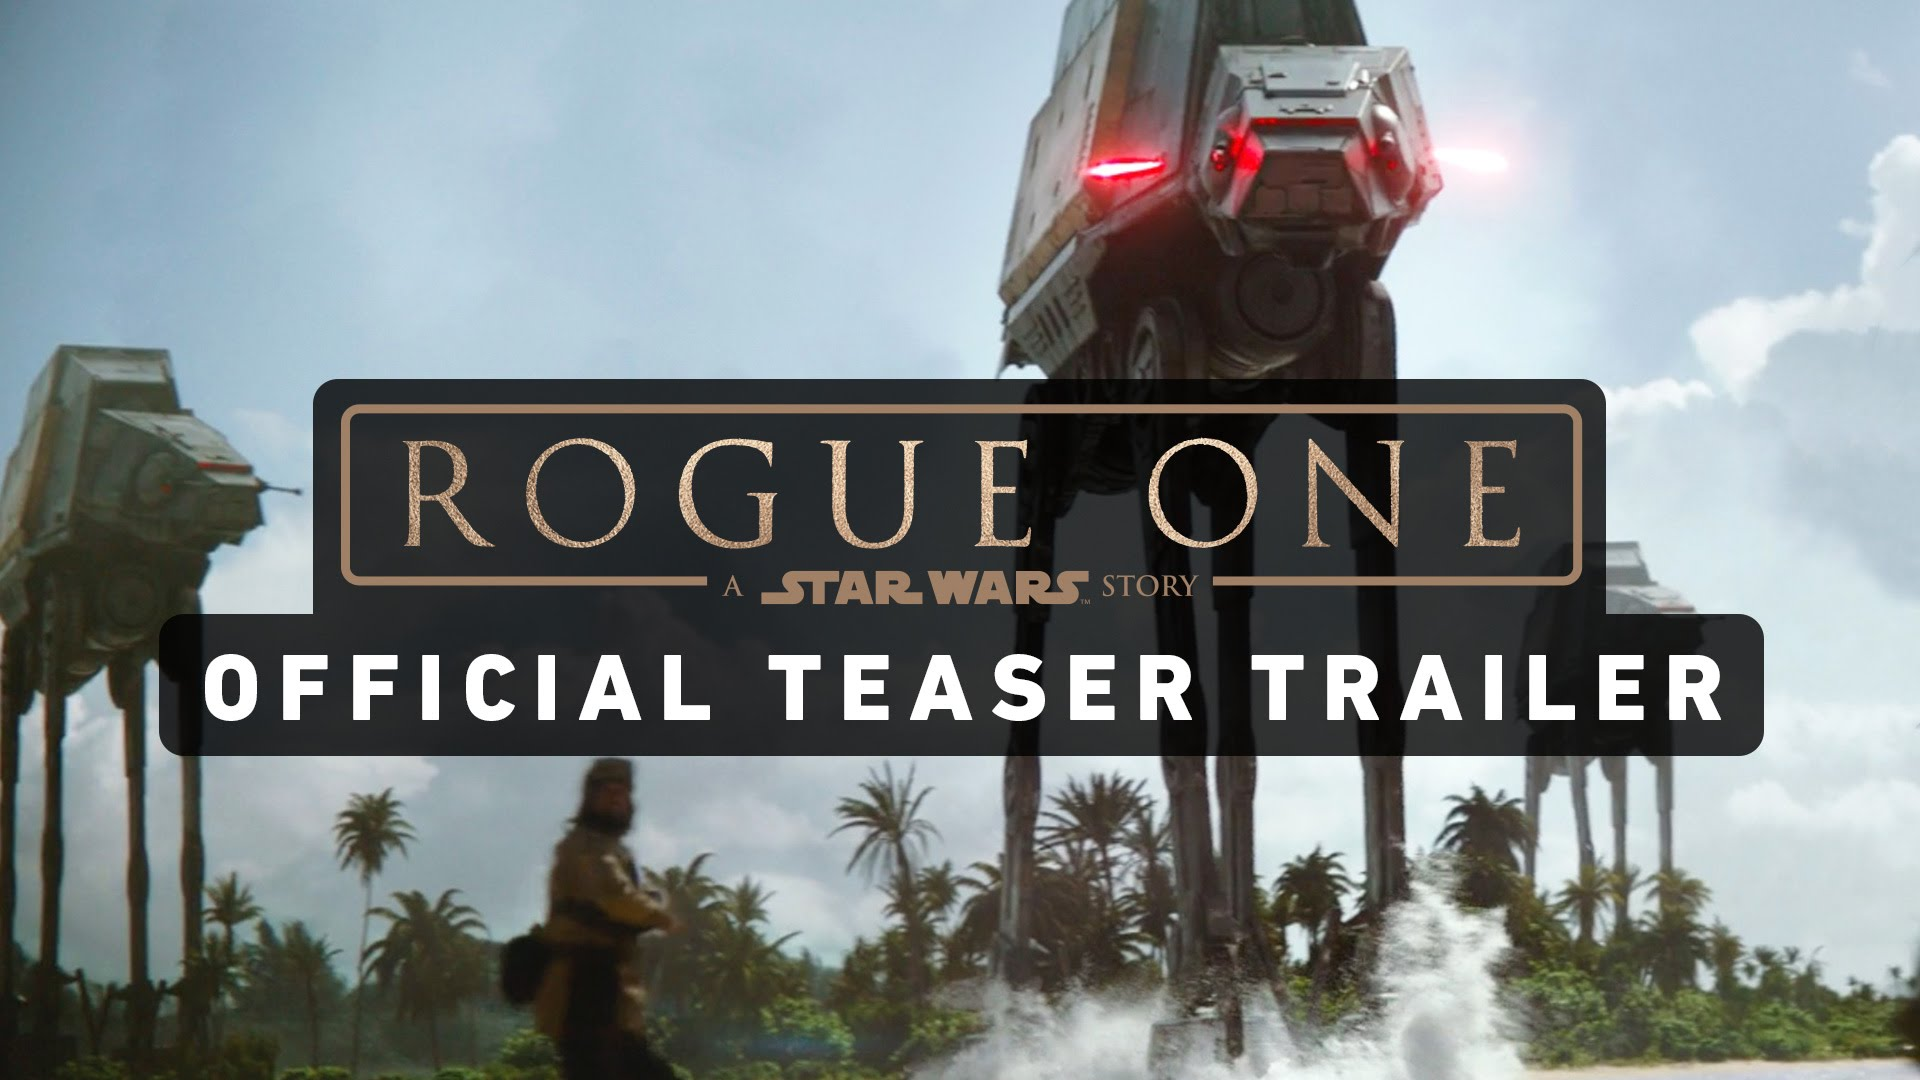 ROGUE ONE: A STAR WARS STORY Teaser